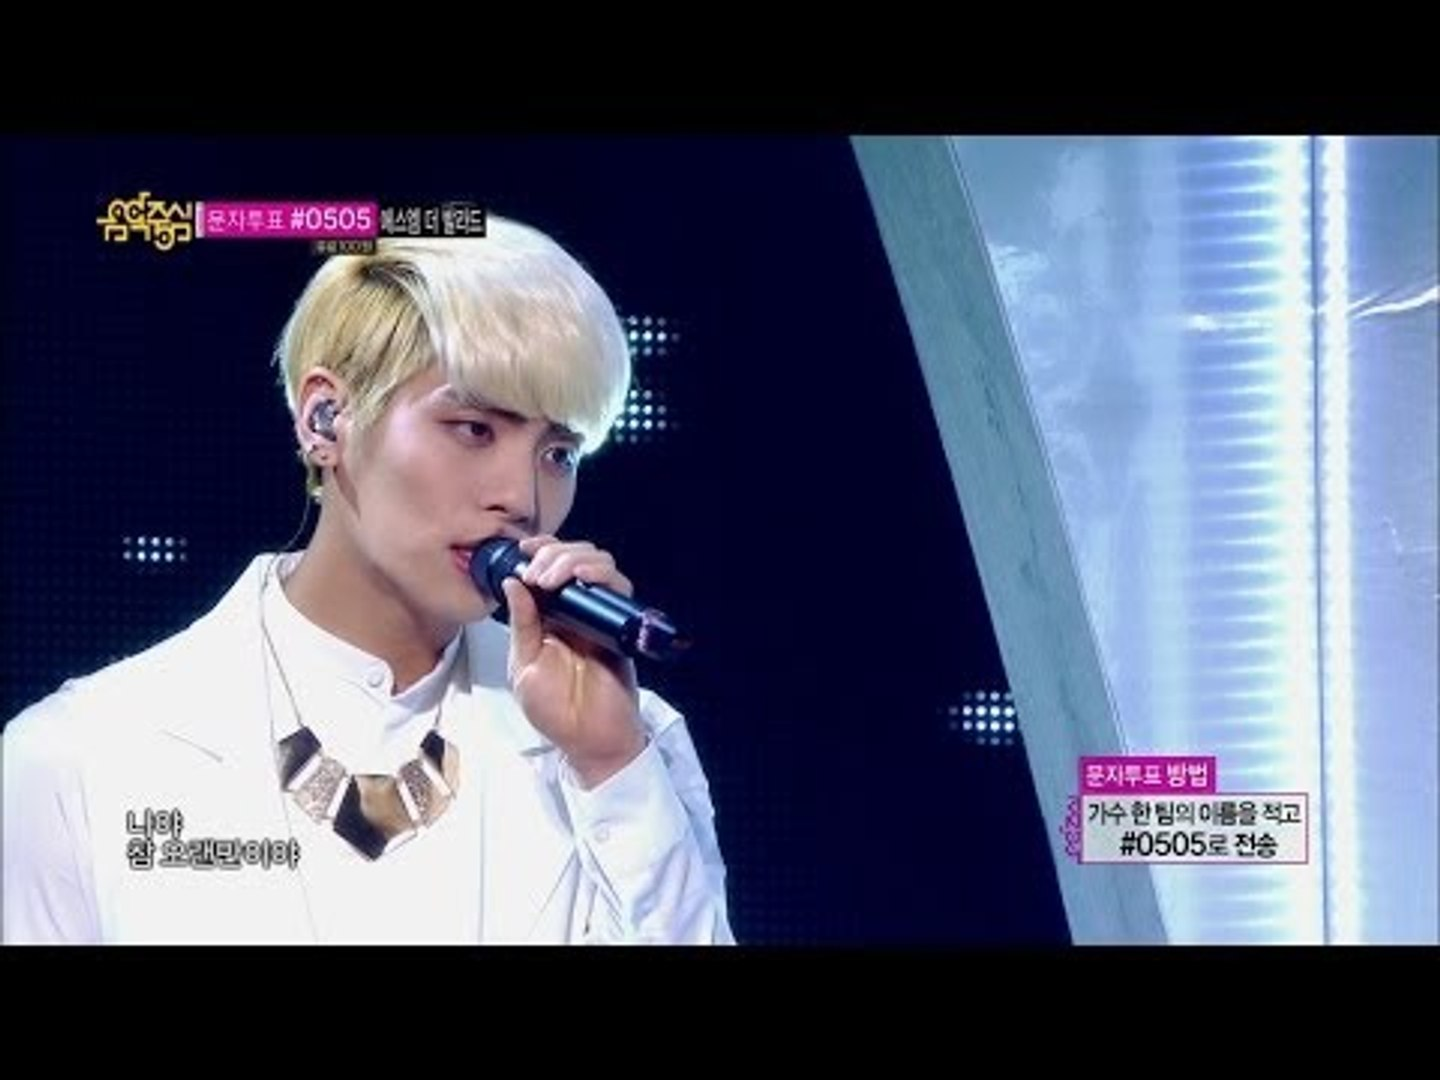 【TVPP】Jonghyun(S.M. THE BALLAD) - Breath, 종현(S.M. THE BALLAD) - 숨소리 @ Show Music core Live